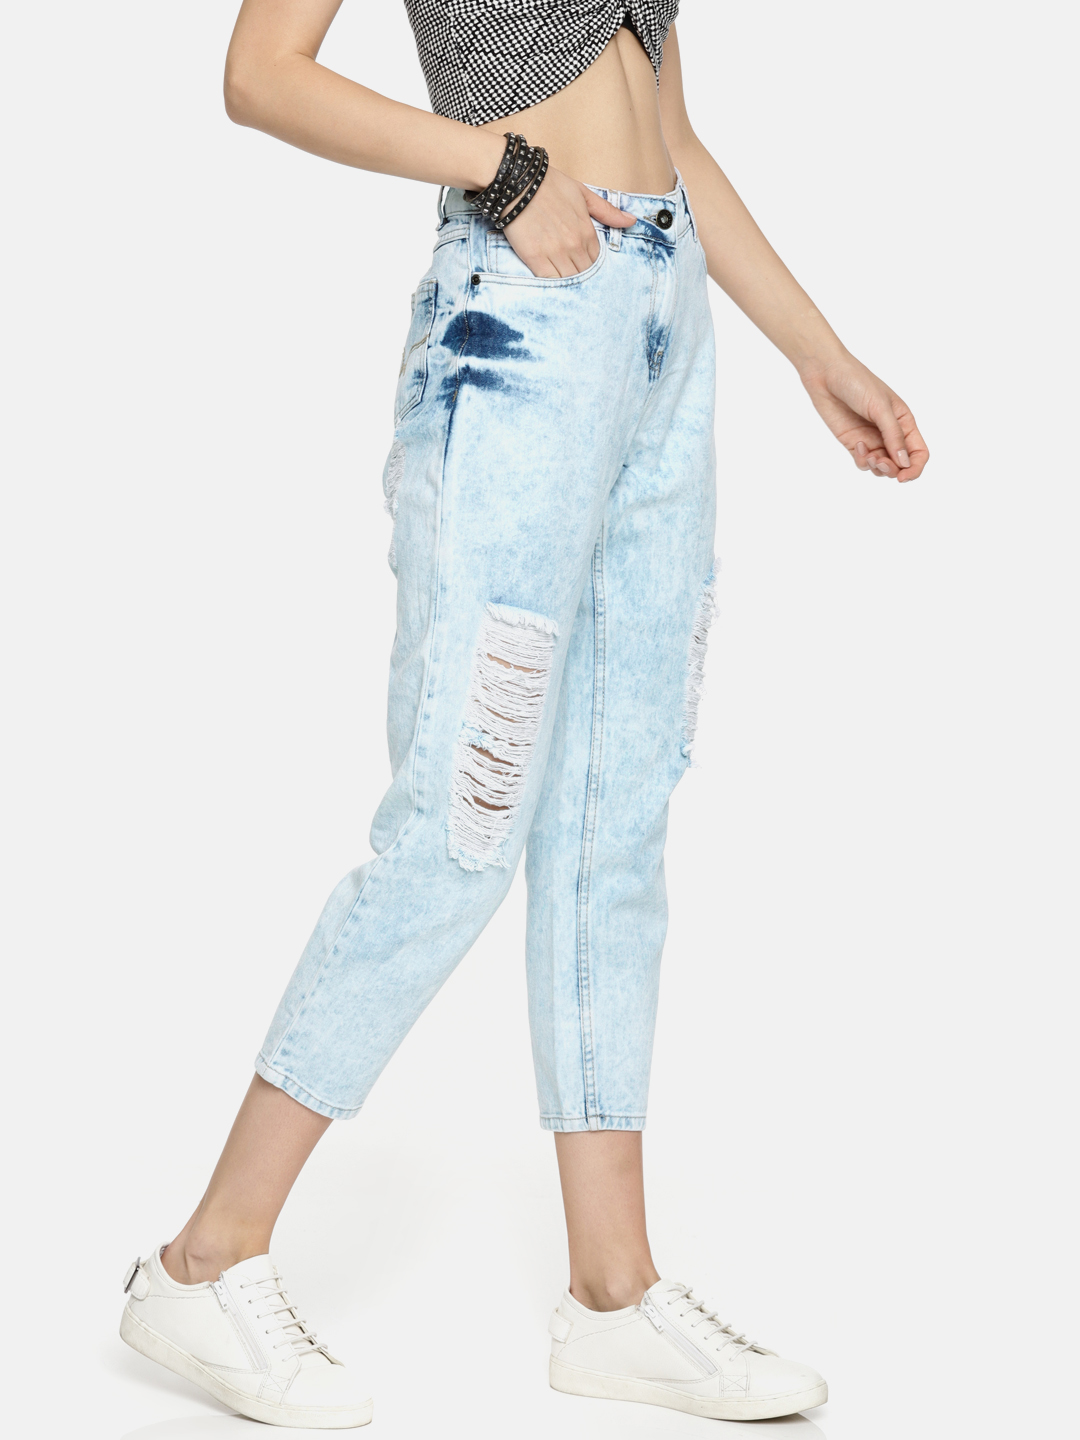 2 priyanka chopra - Women Blue Boyfriend Fit Mid-Rise Mildly Distressed Cropped Jeans